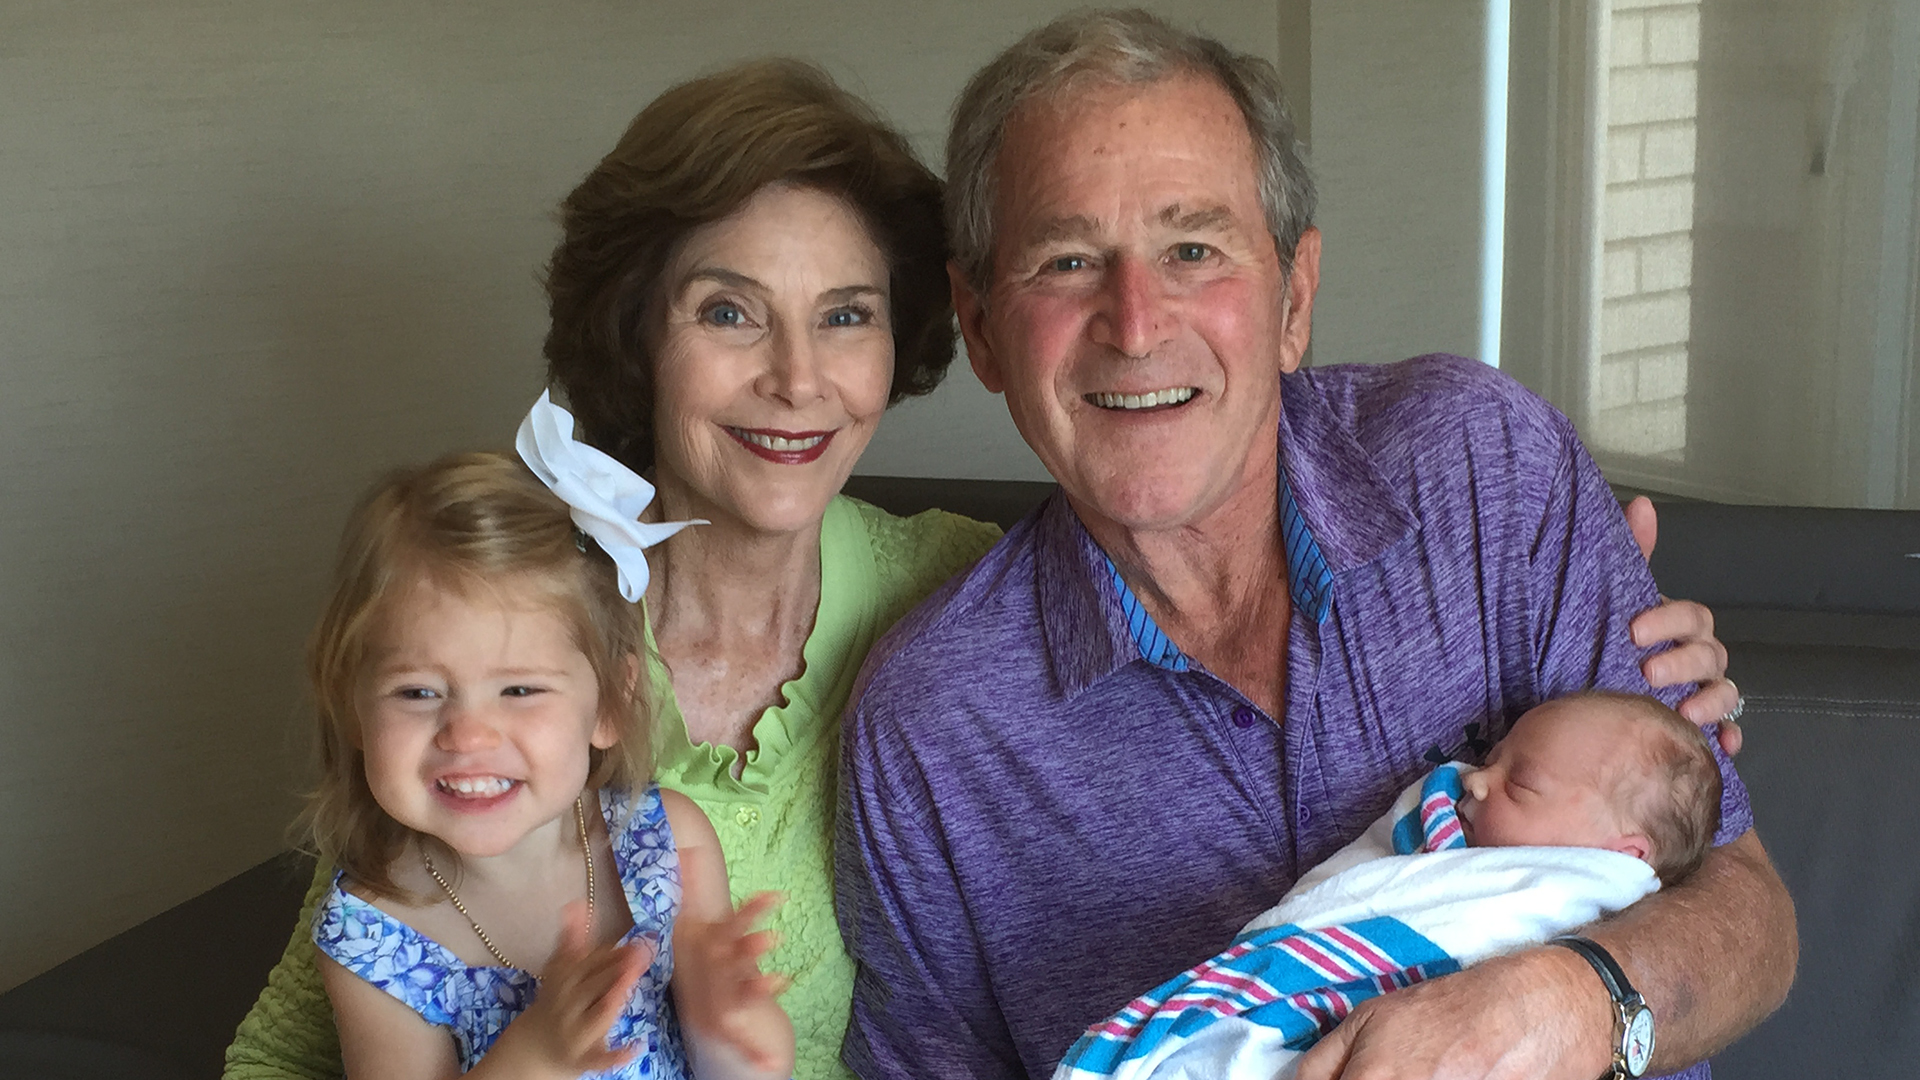 George W. Bush shares adorable photo of meeting his ...